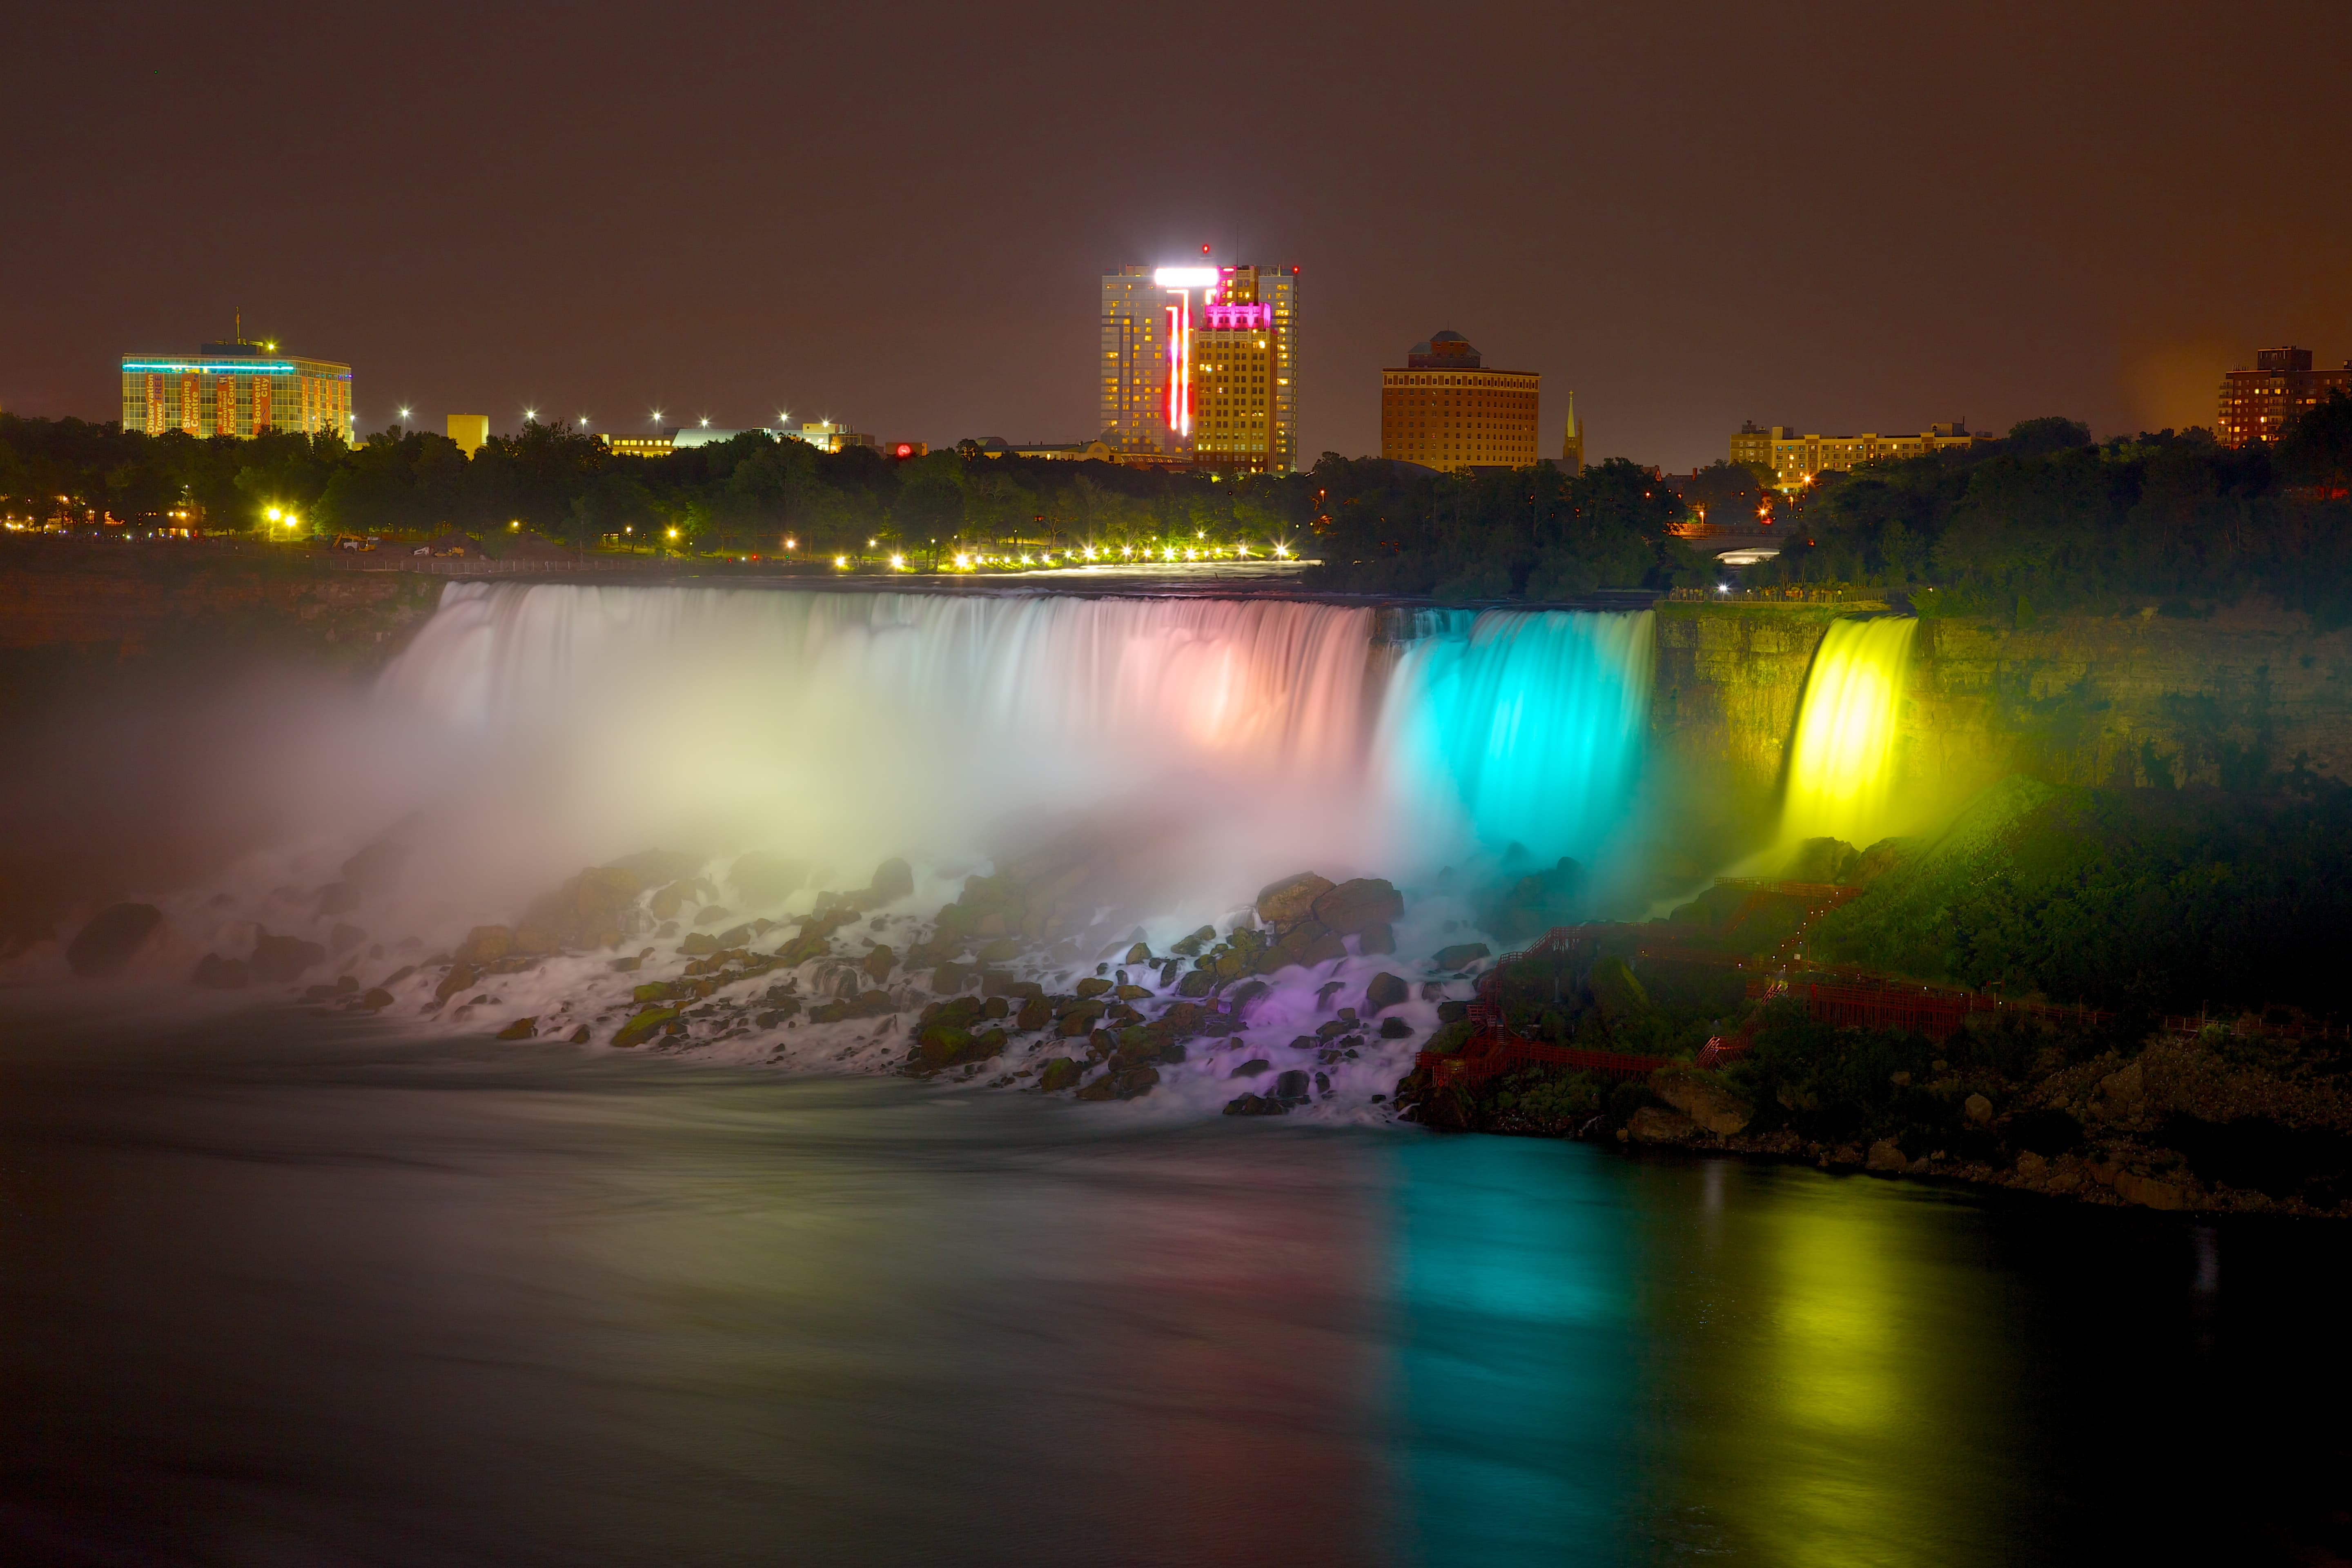 The falls are lit at night.